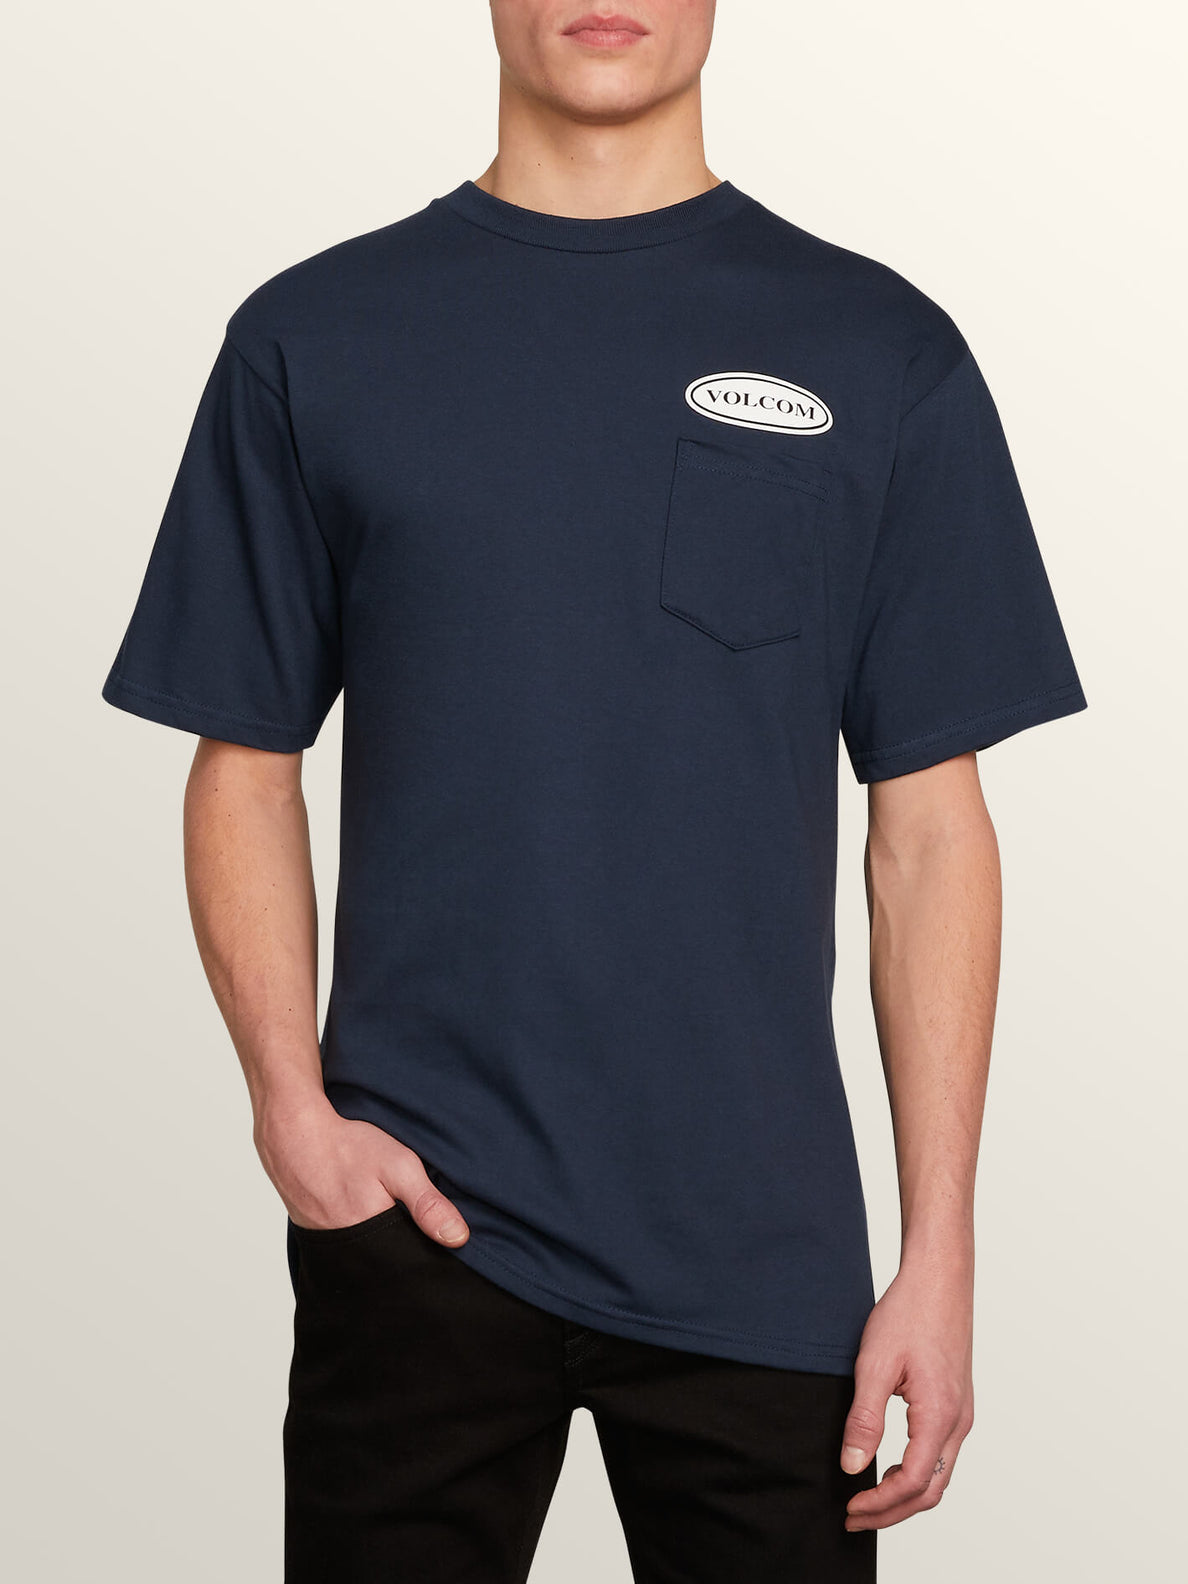 Stonecore 94 Short Sleeve Pocket Tee In Navy, Front View